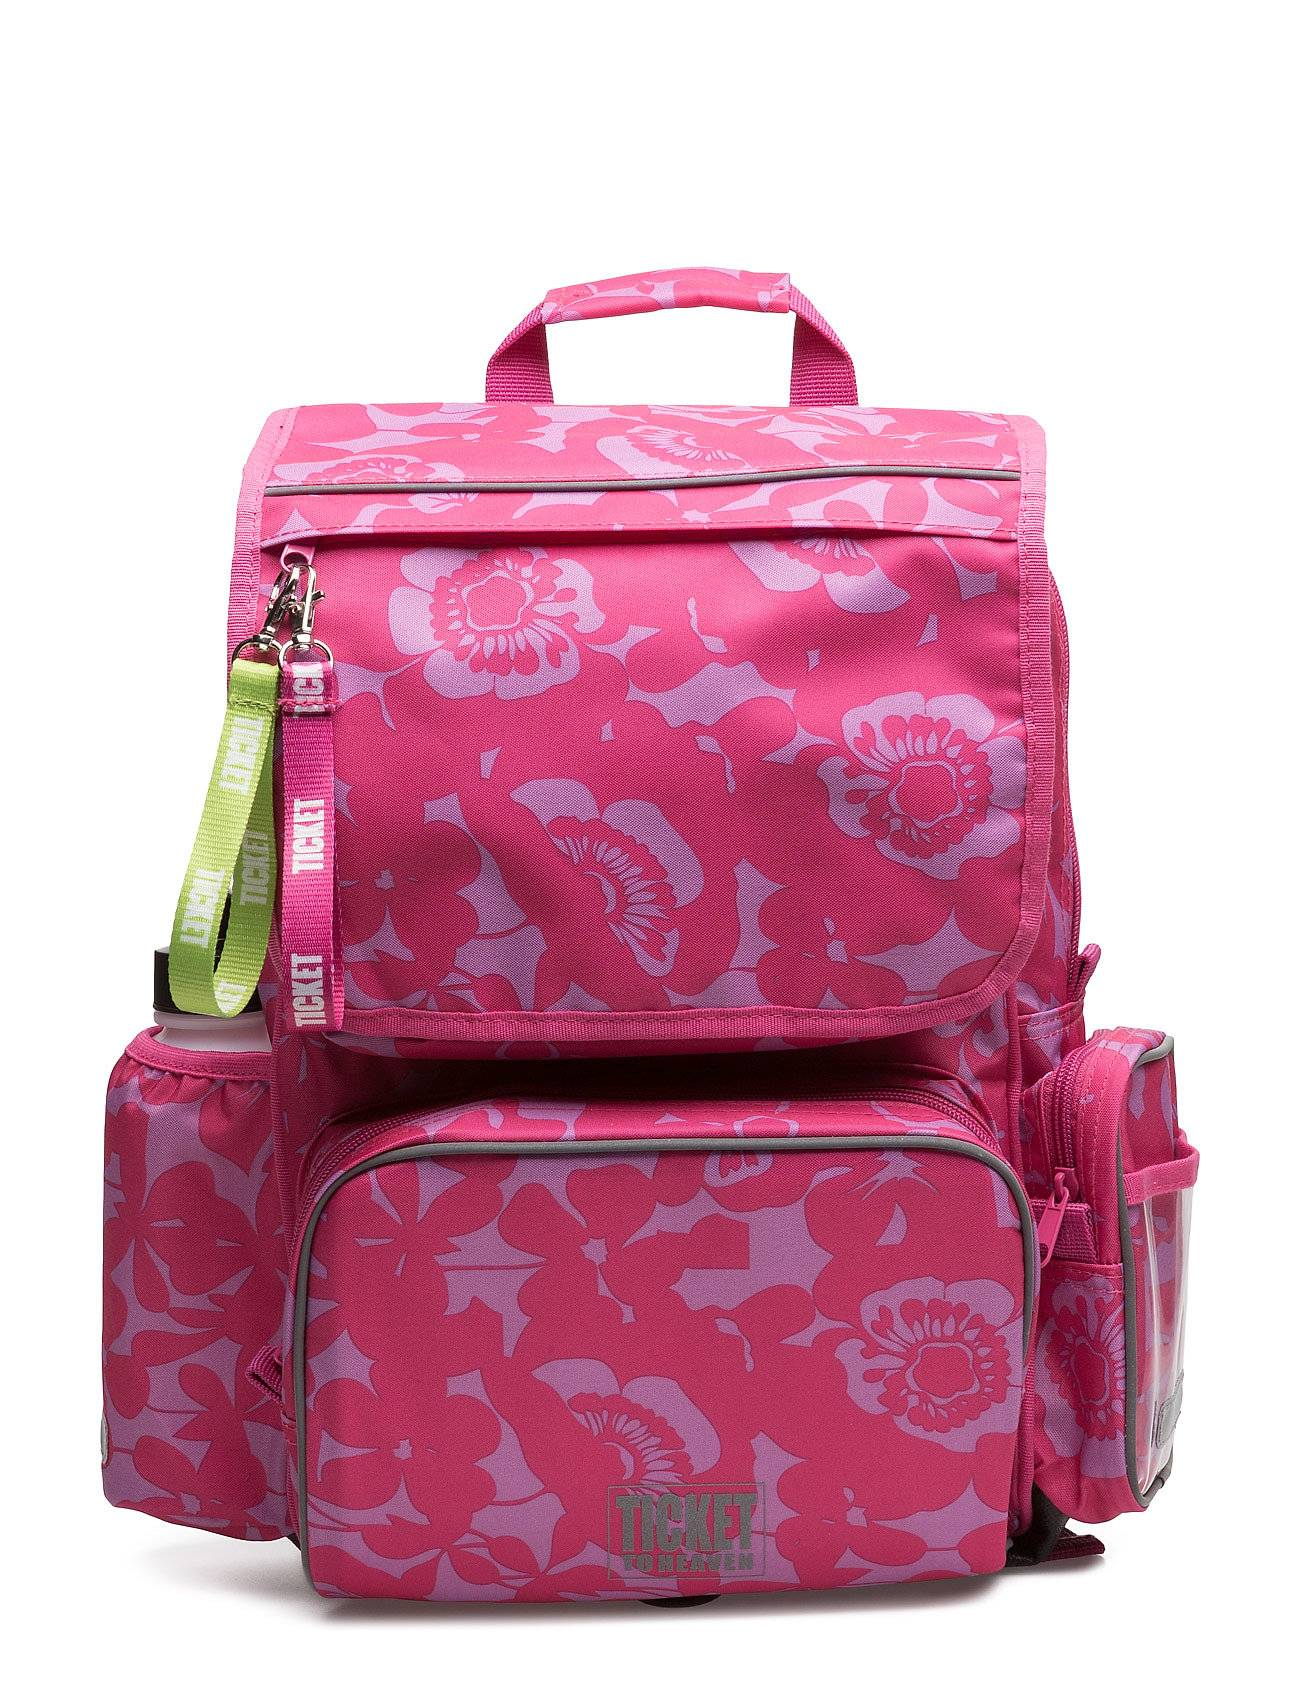 Ticket to Heaven Backpack Girl Classic